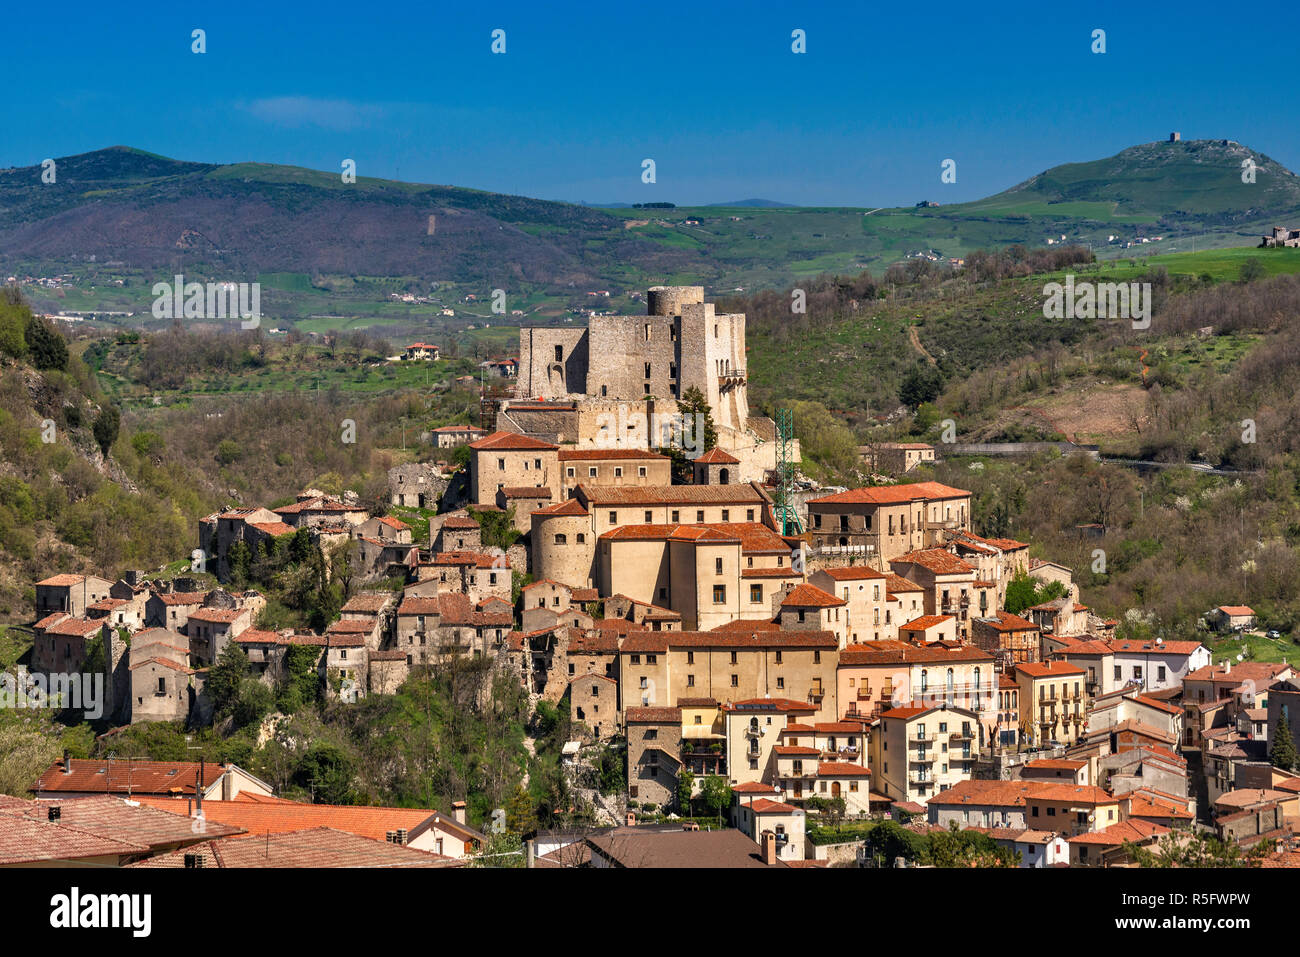 Medieval castle over town of Brienza, Lucanian Apennines, Basilicata, Italy Stock Photo